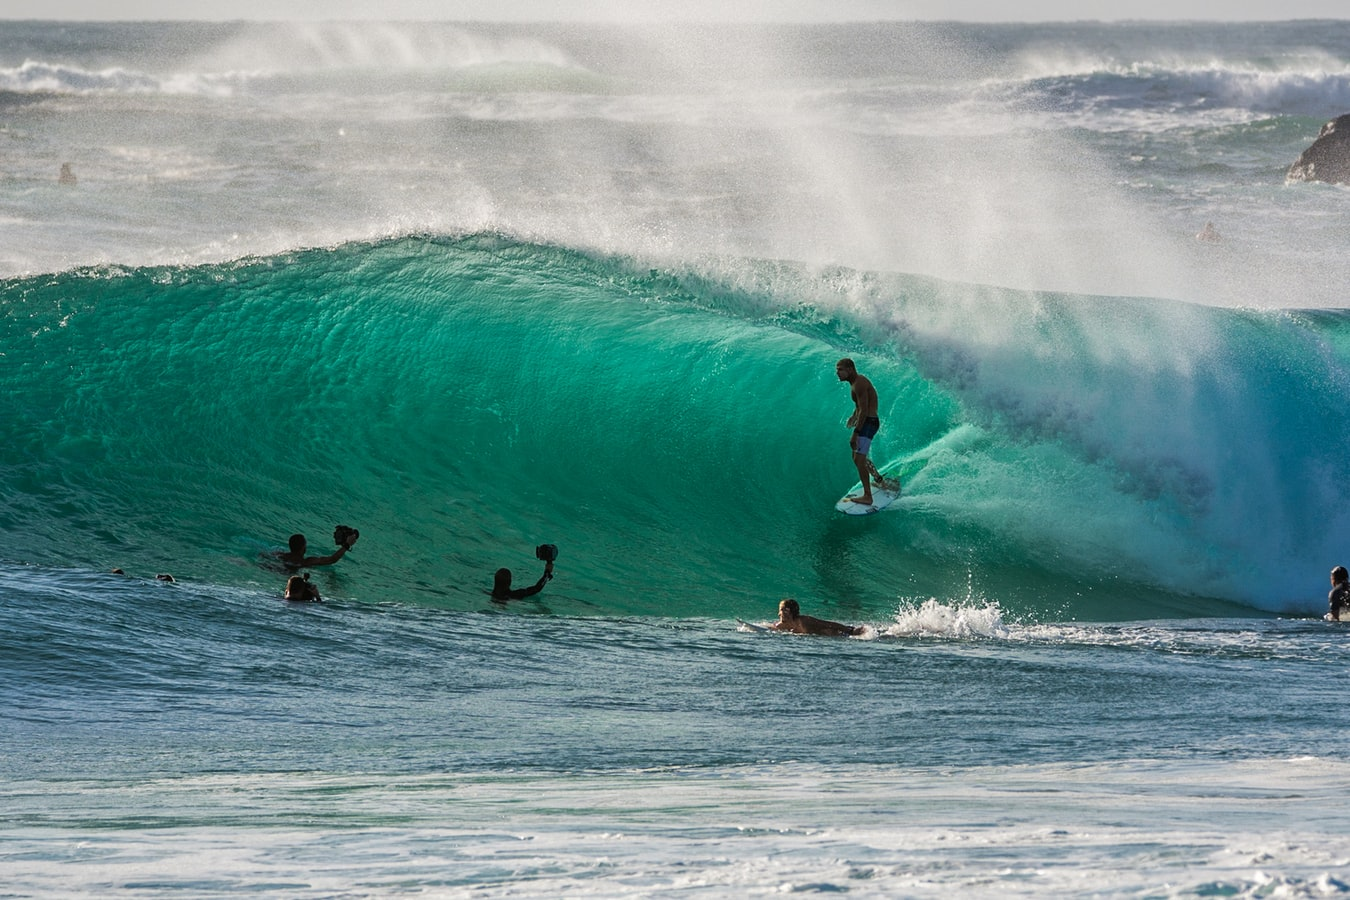 The green room, barrel, or tube